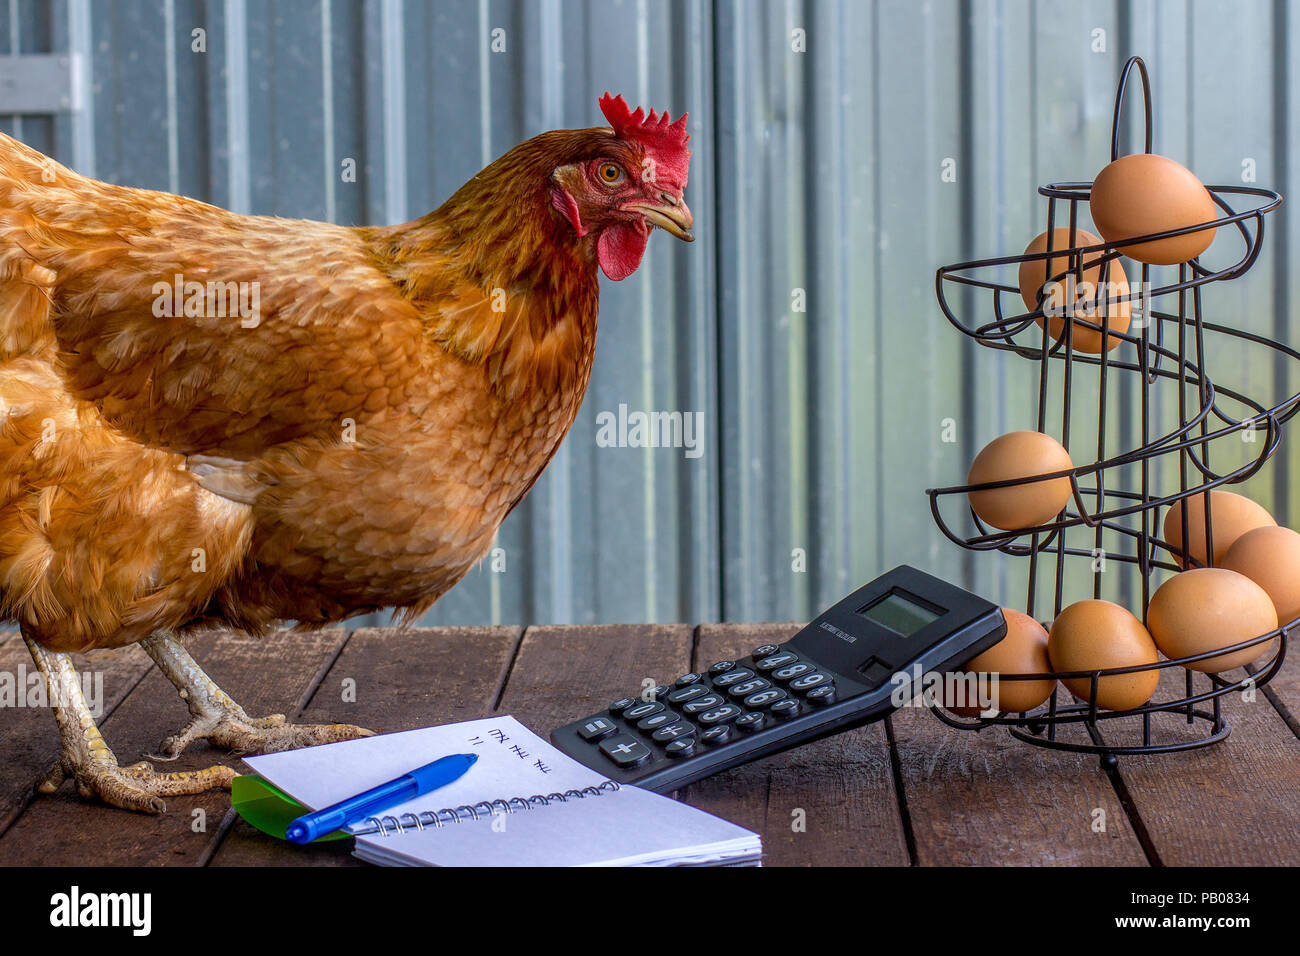 Real rescued battery farm hen free now and a free entrepreneur calculating egg production, accounts, tax, small business - Stock Image